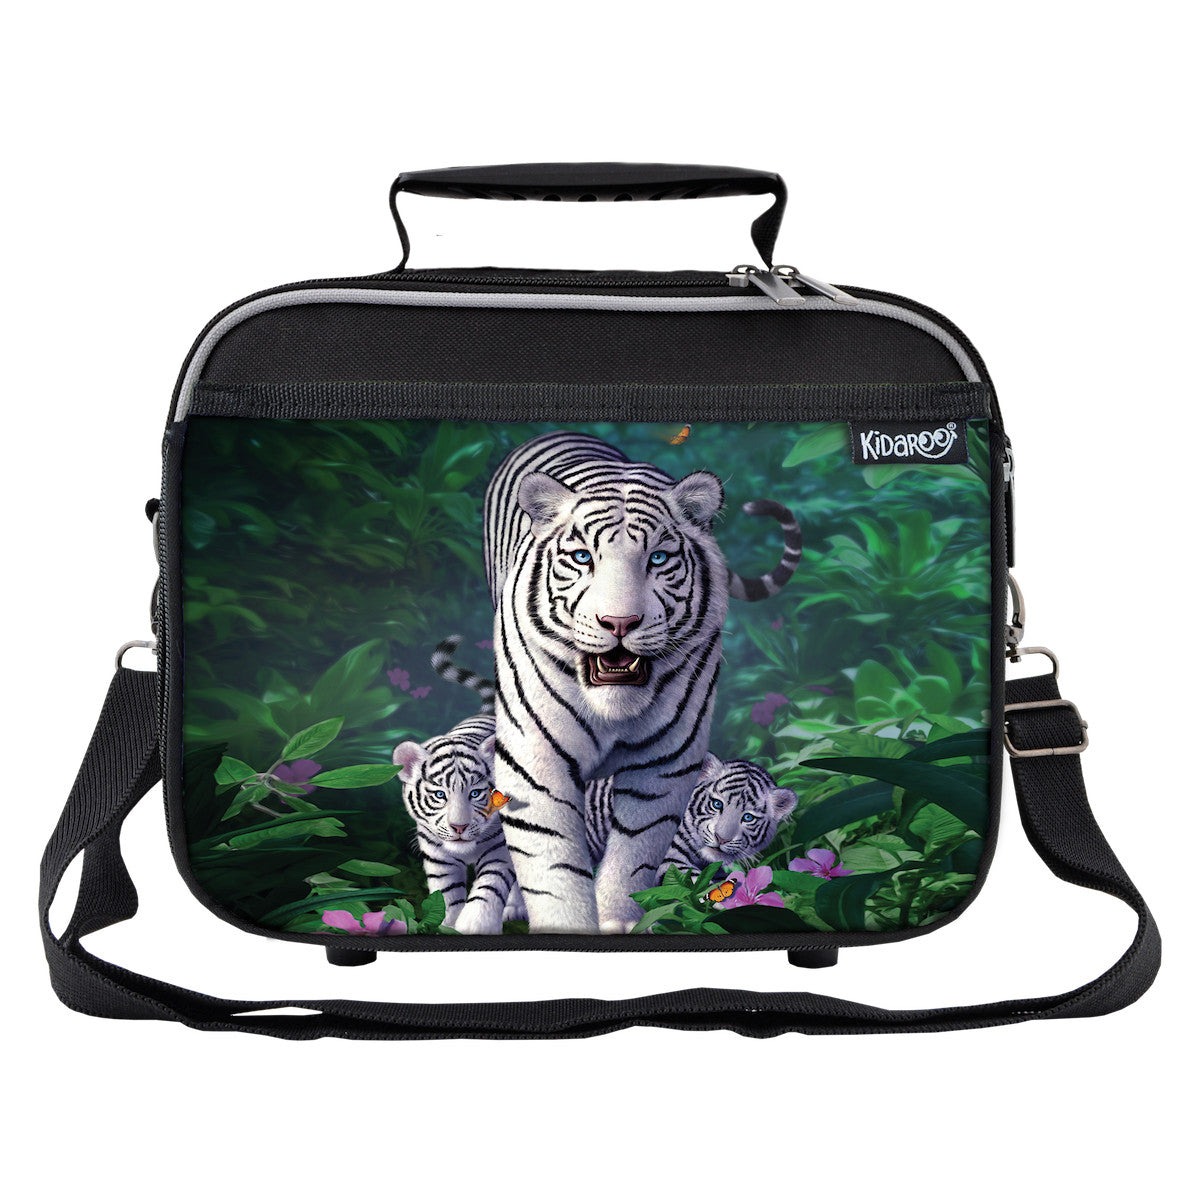 White Tiger & Cubs School Lunchbox, Tote Bag for Boys, Girls, Kids